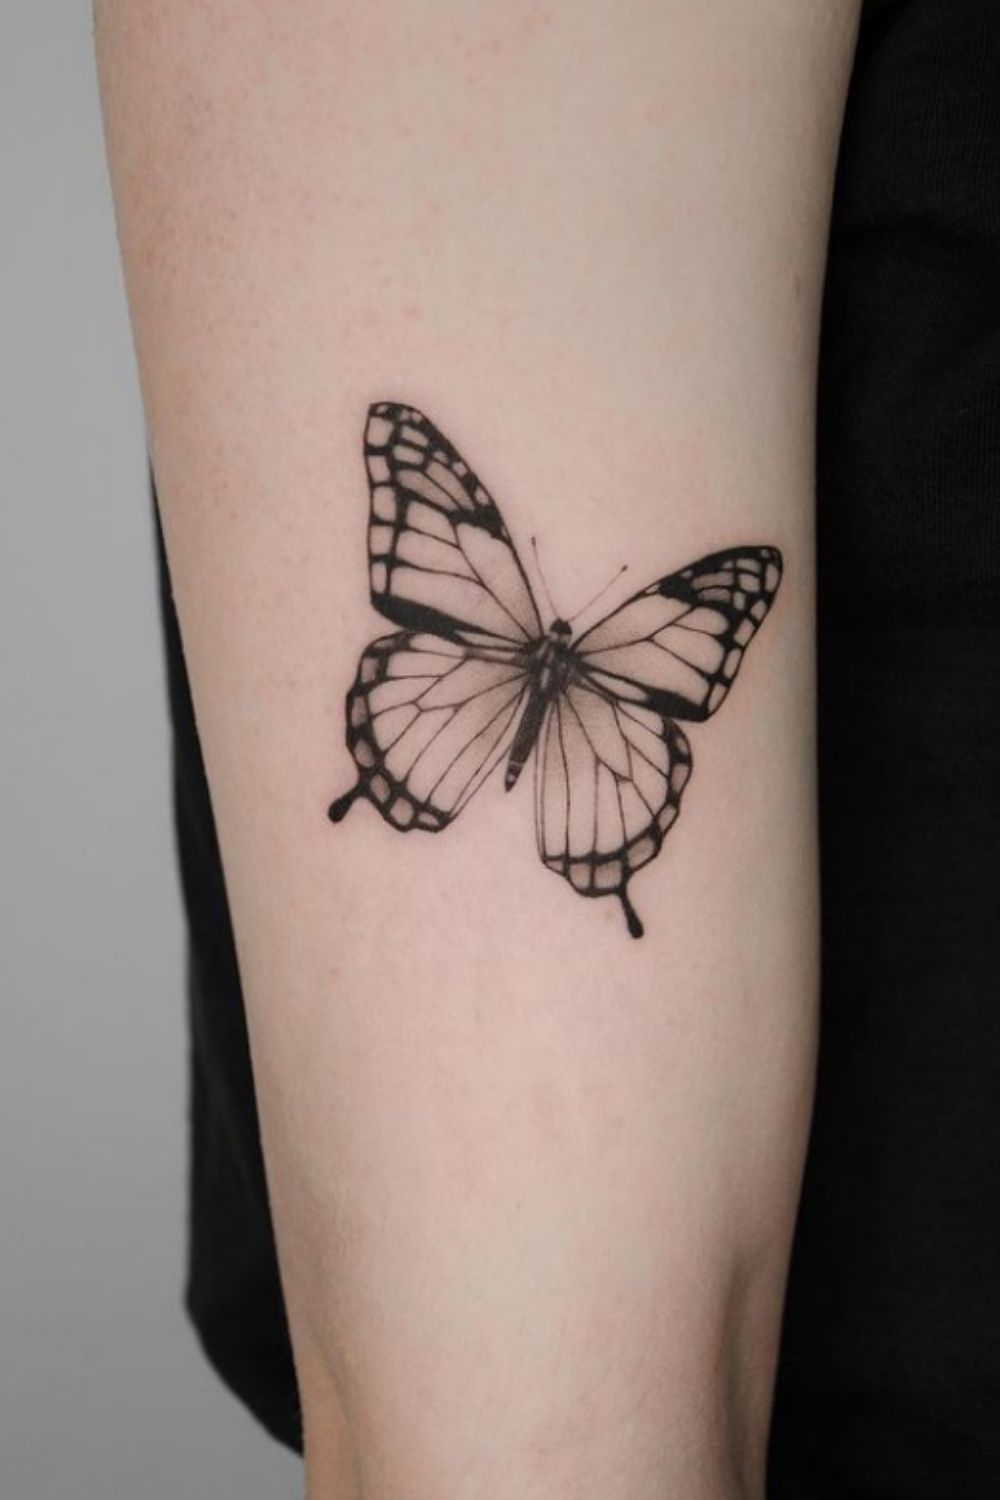 Vividly Butterfly Tattoo Ideas for Cool Girls You Must Try 2021